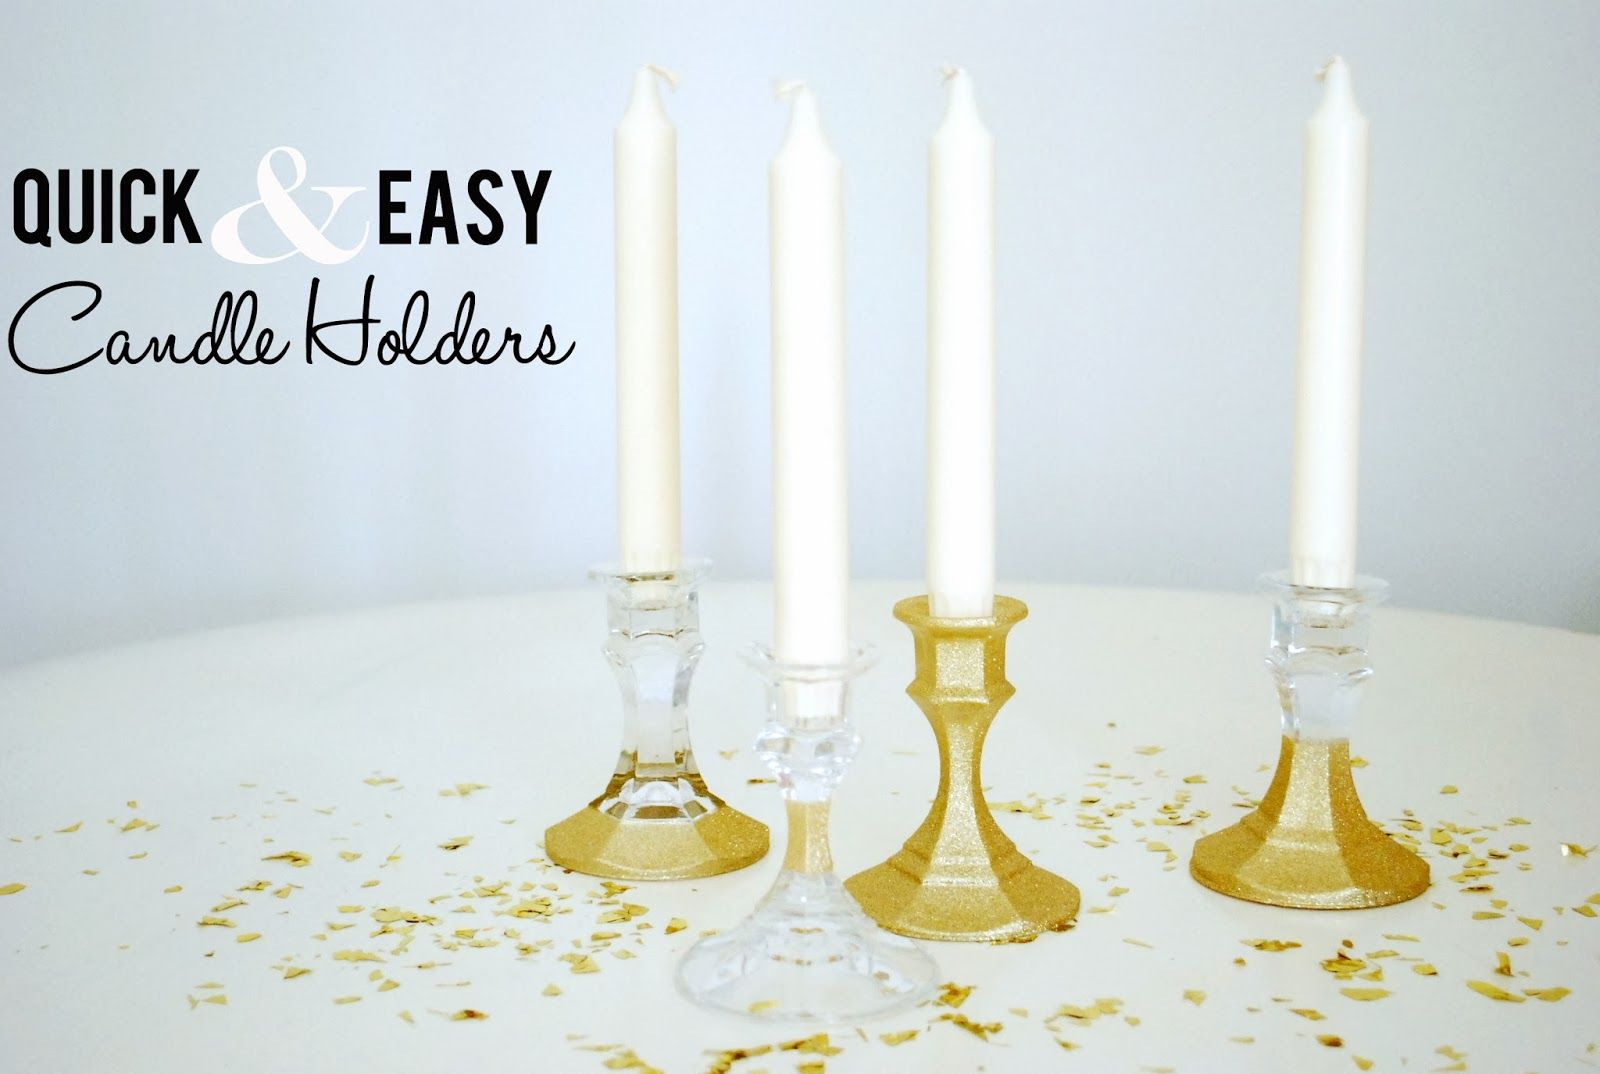 Quick u easy thrift store candle holders via life as a thrifter